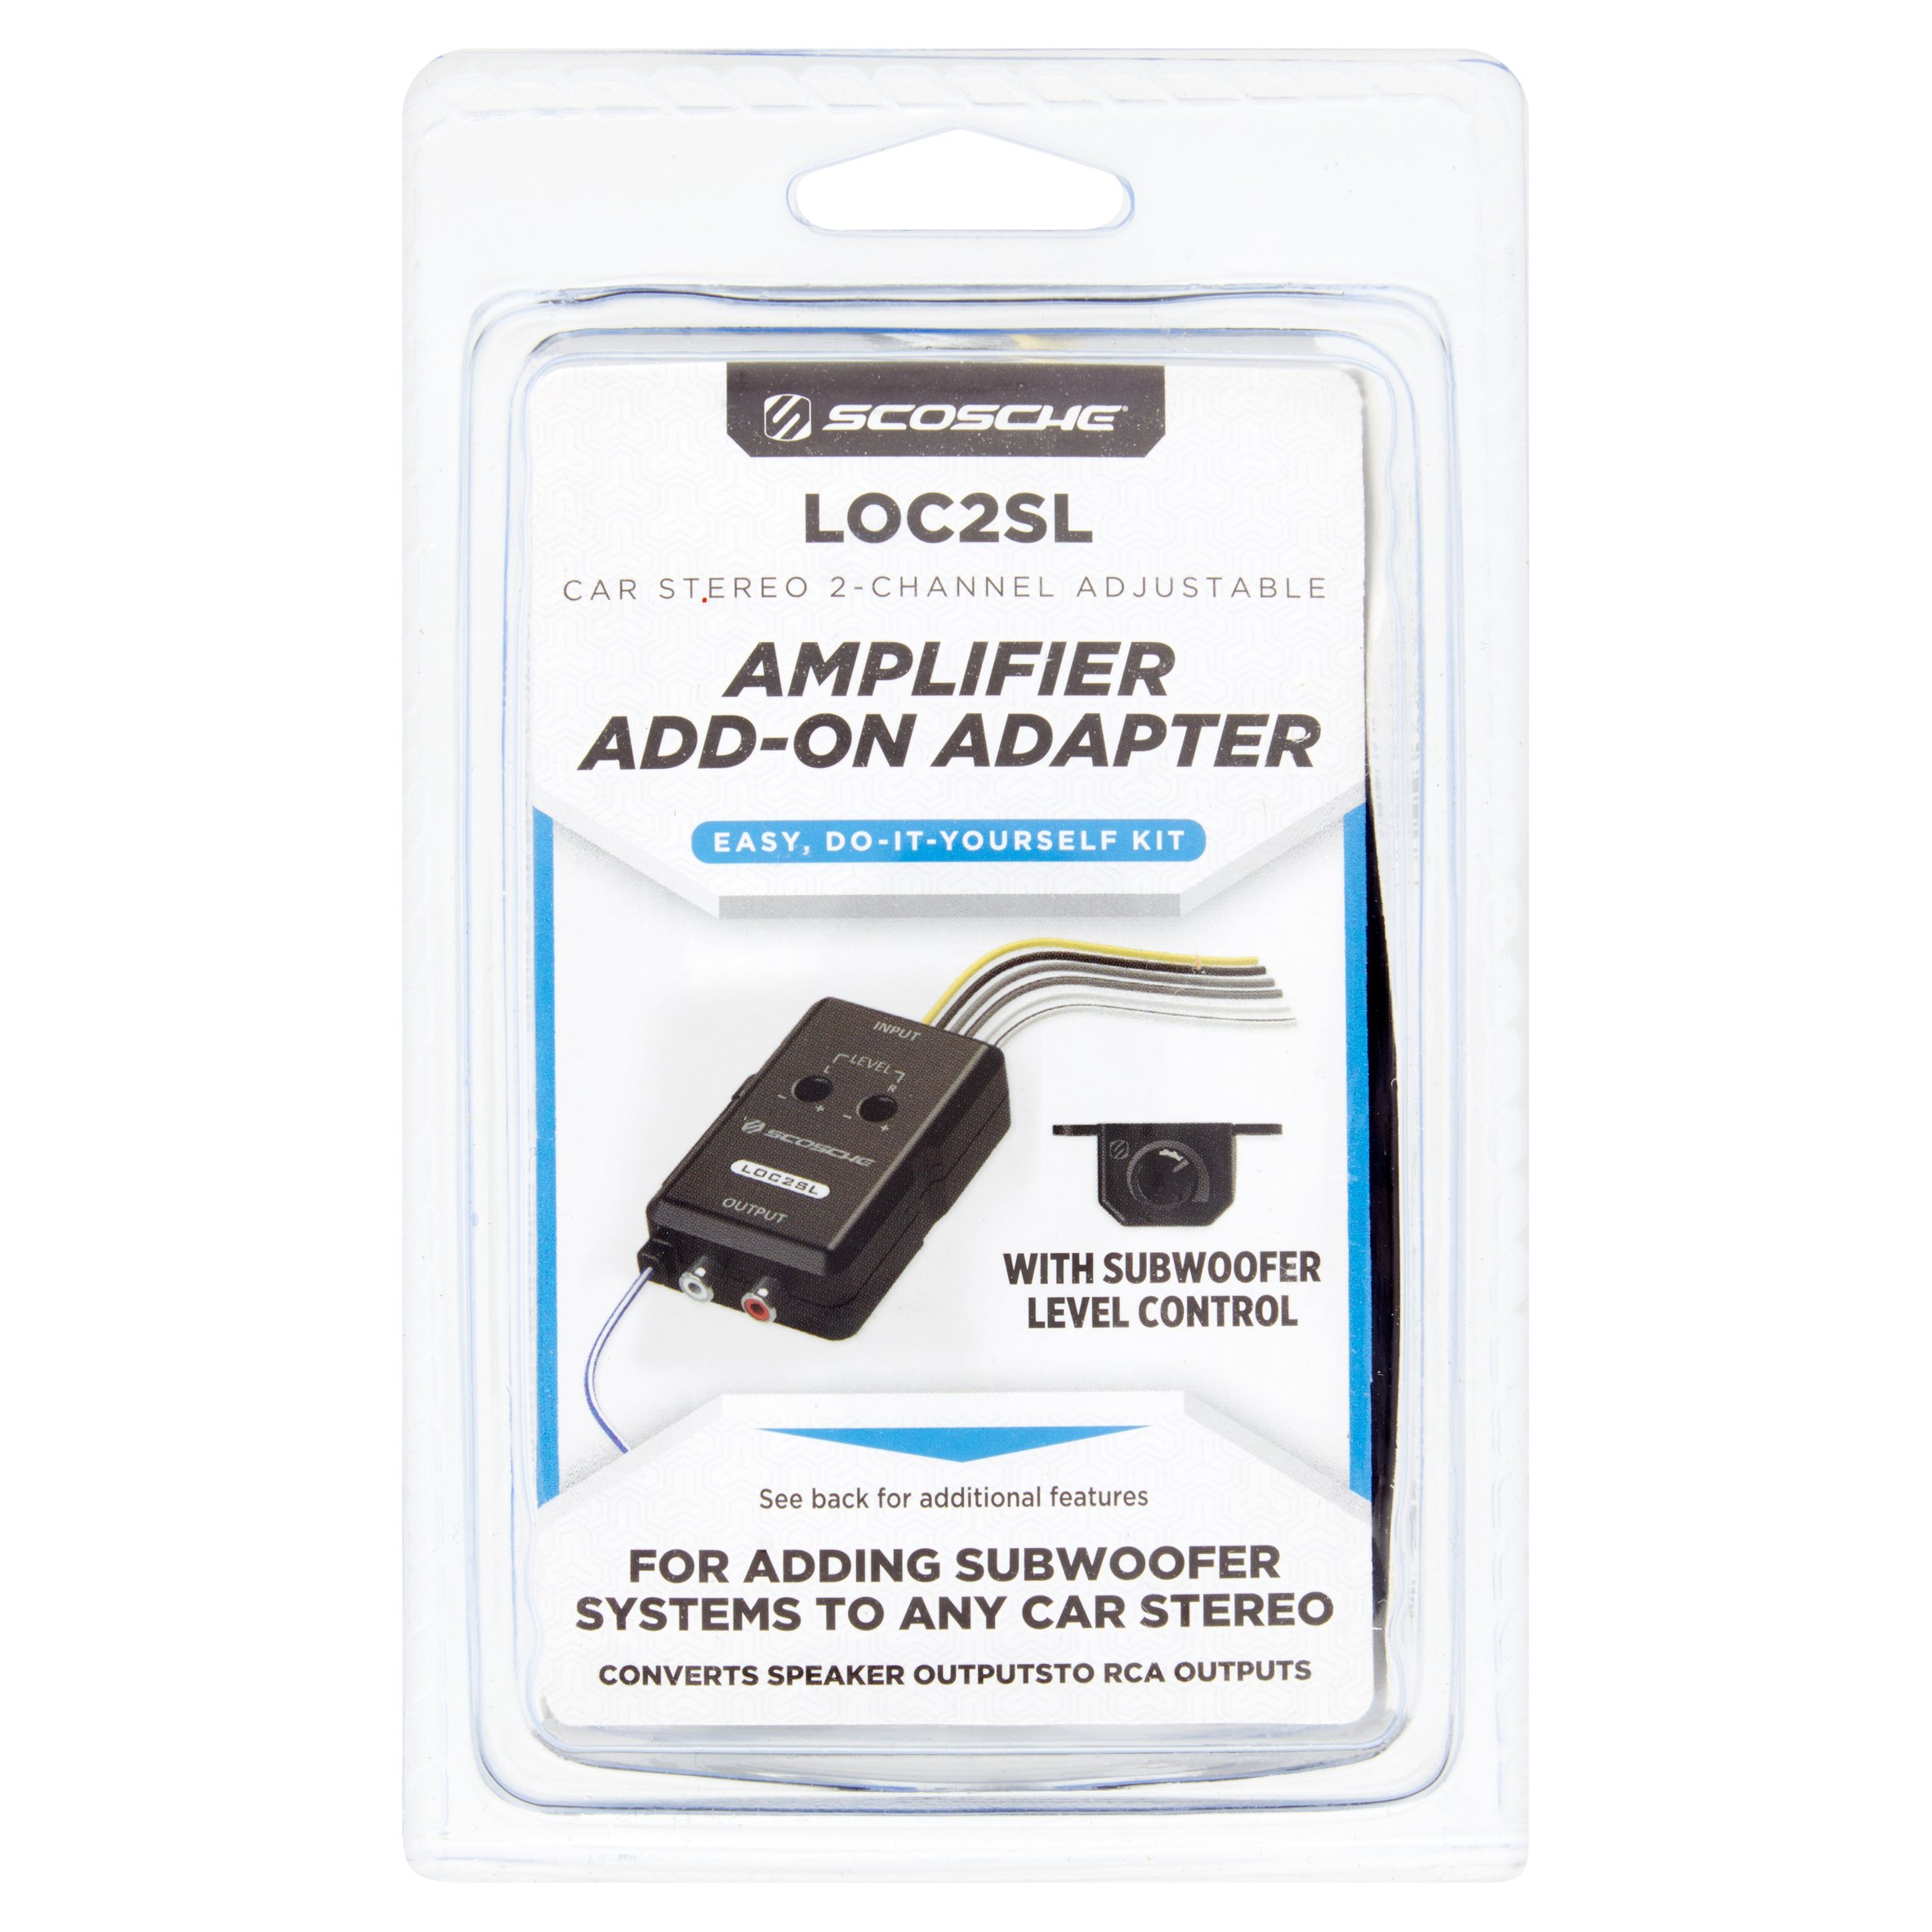 Scosche Car Stereo 2-Channel Adjustable Amplifier Add-On Adapter